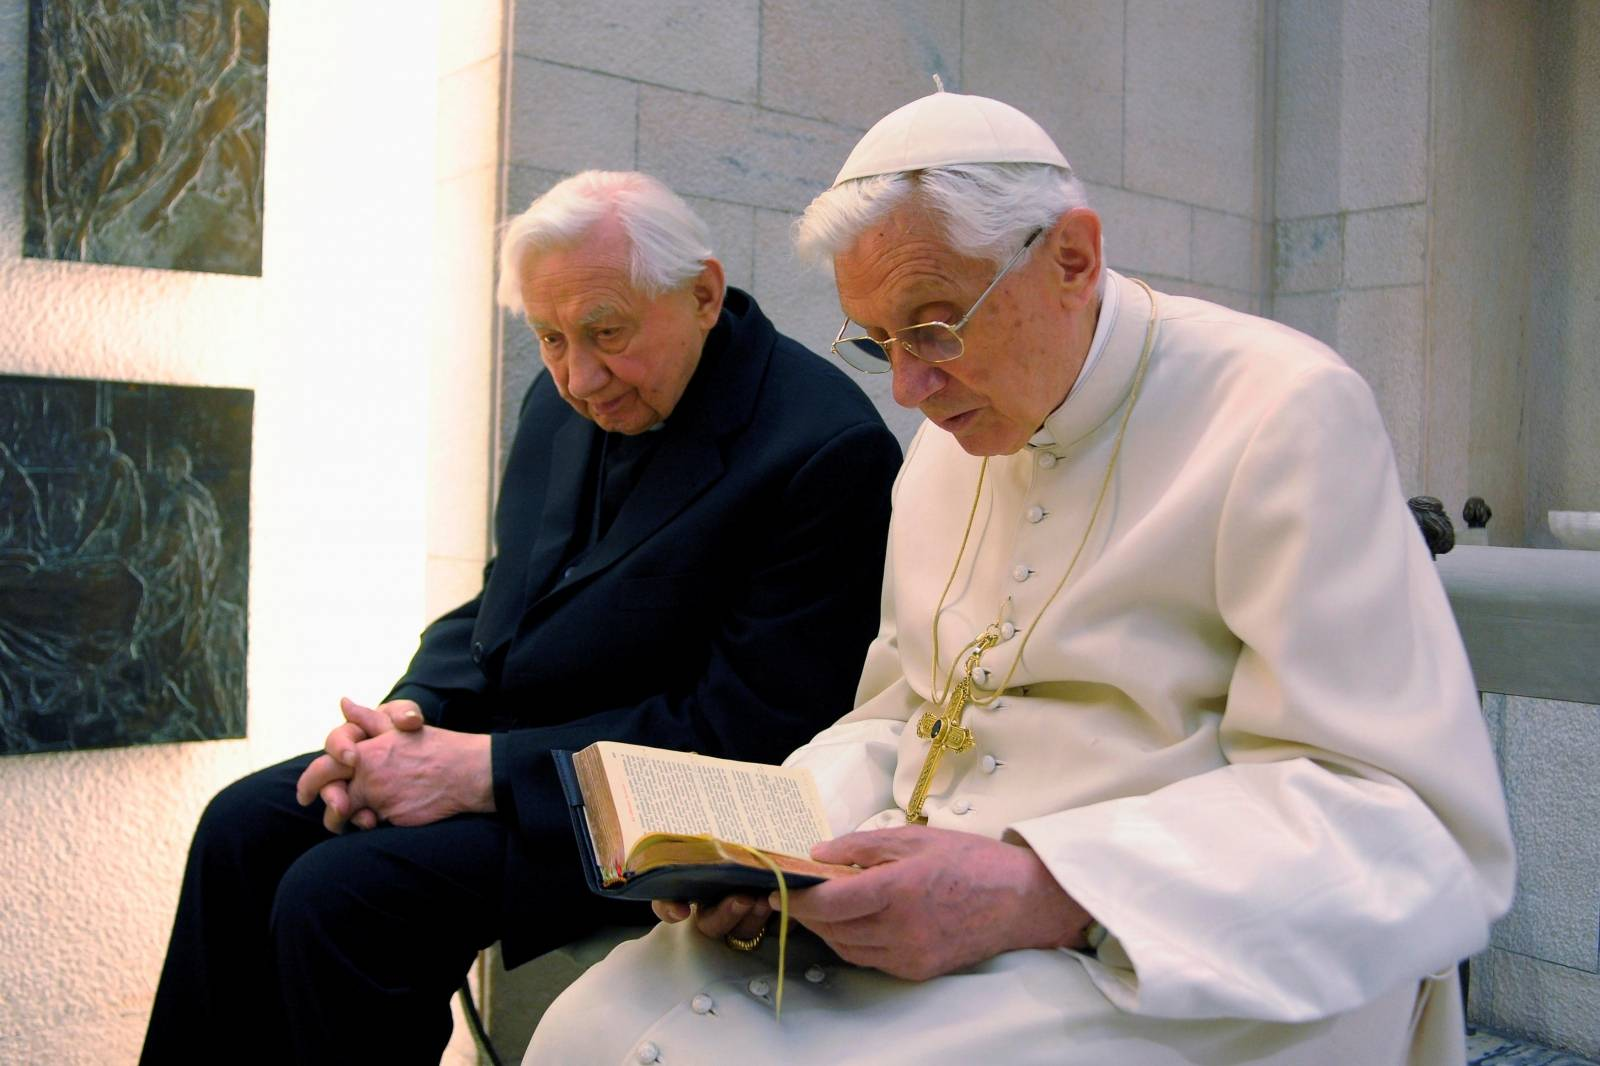 FILE PHOTO: Pope Benedict XVI prays with his brother Mons. Georg Ratzinger in his private chapel at the Vatican